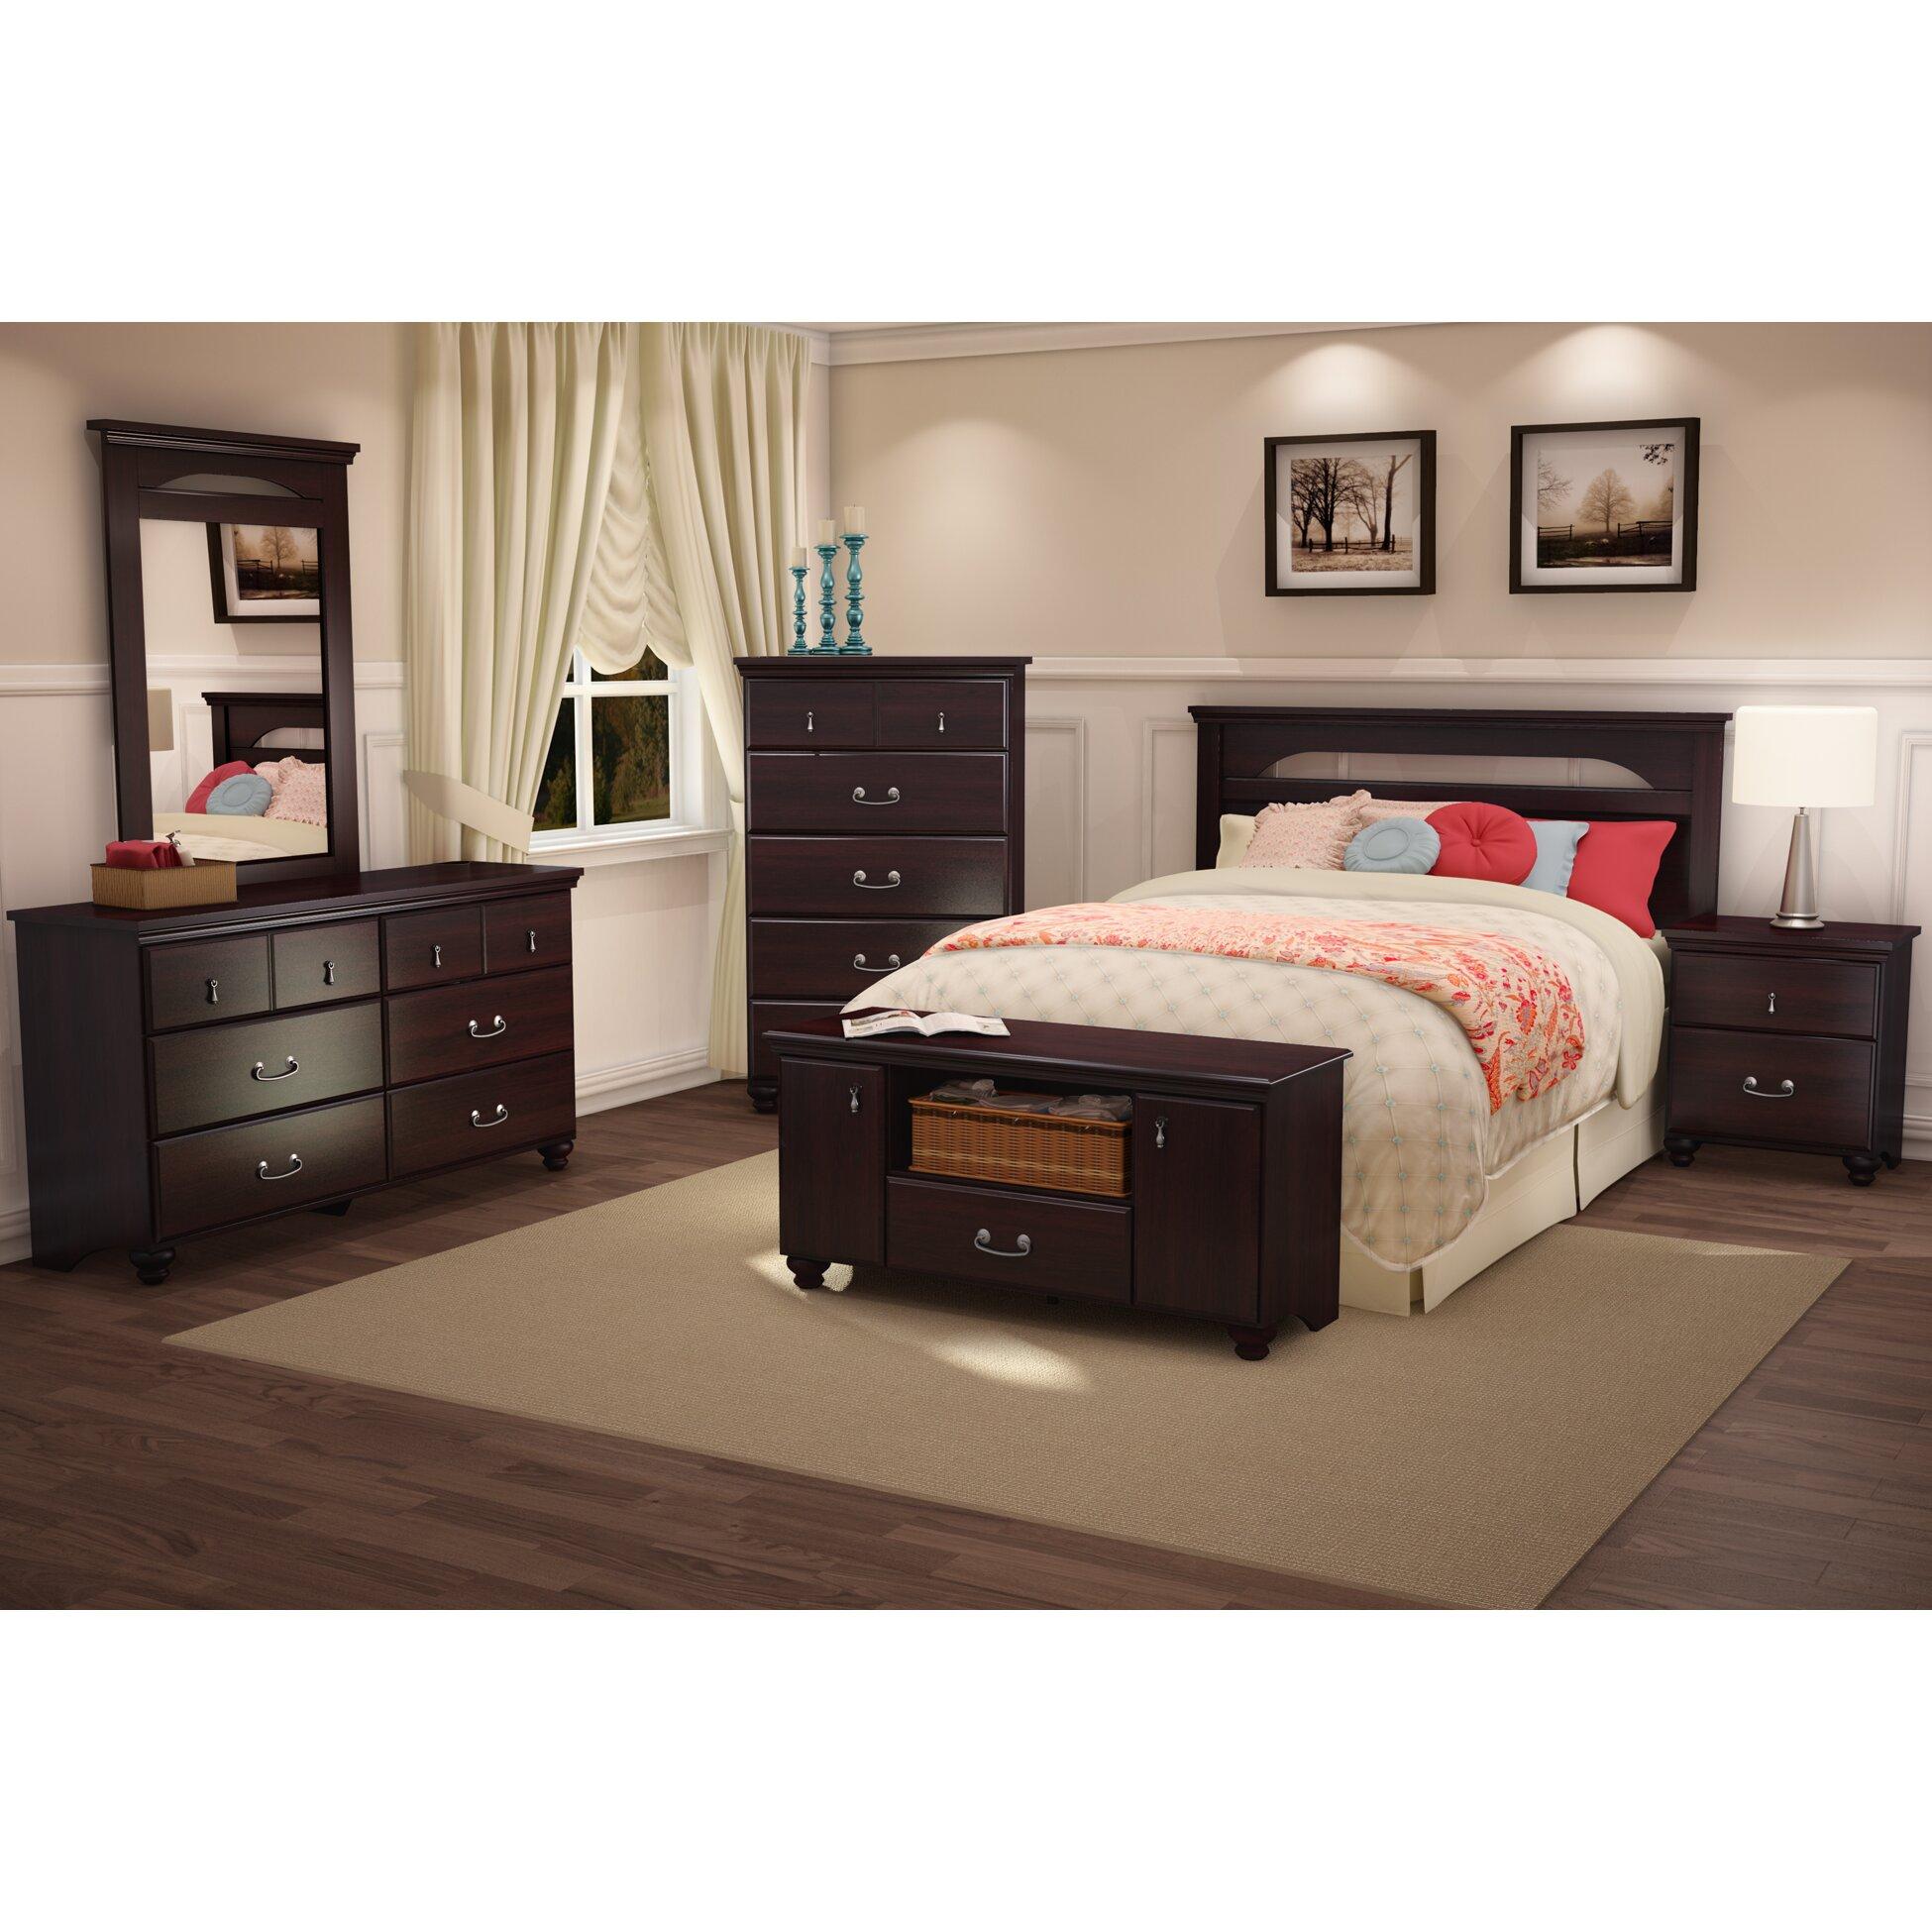 South shore noble collection storage bench reviews wayfair - South shore furniture bedroom sets ...